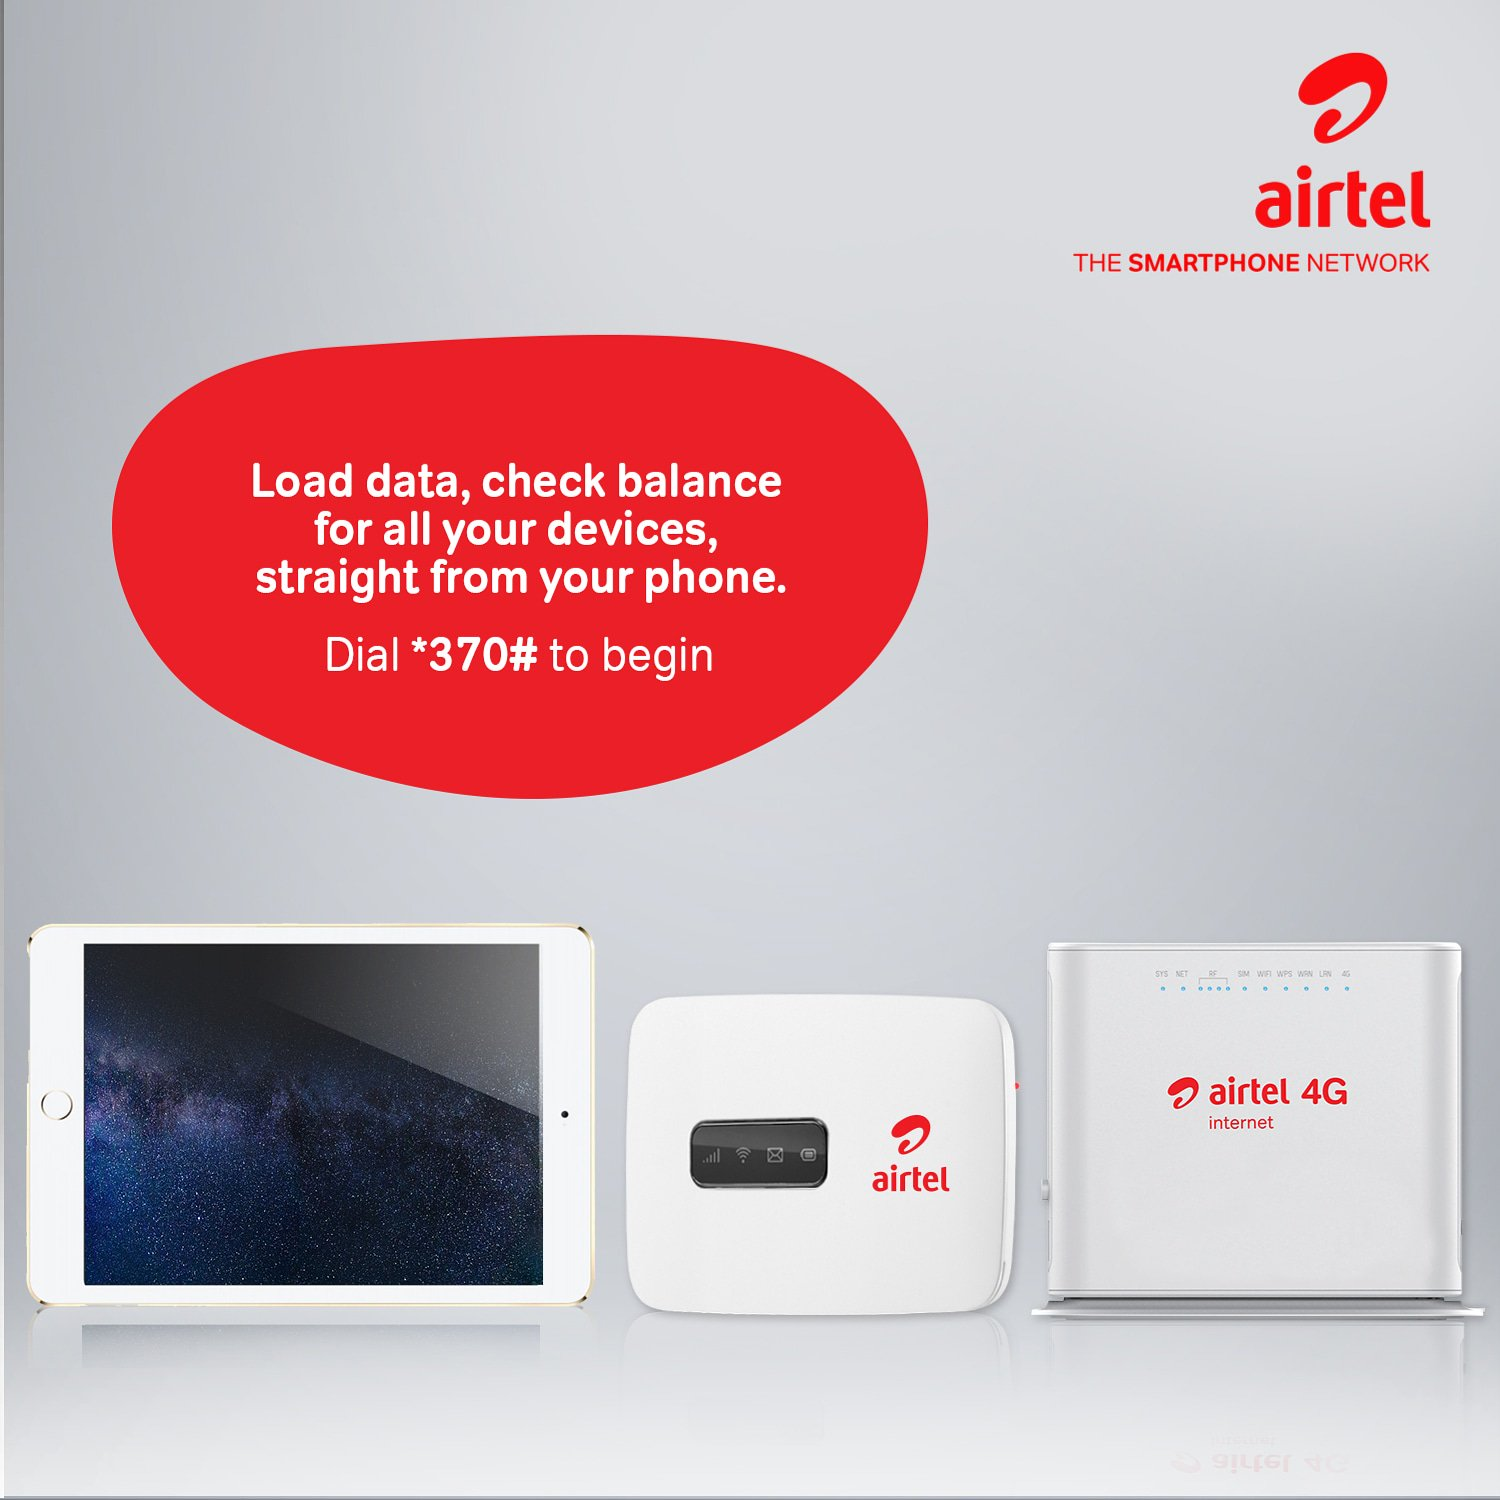 Airtel *370# Alternative Data Line Manager - How it works